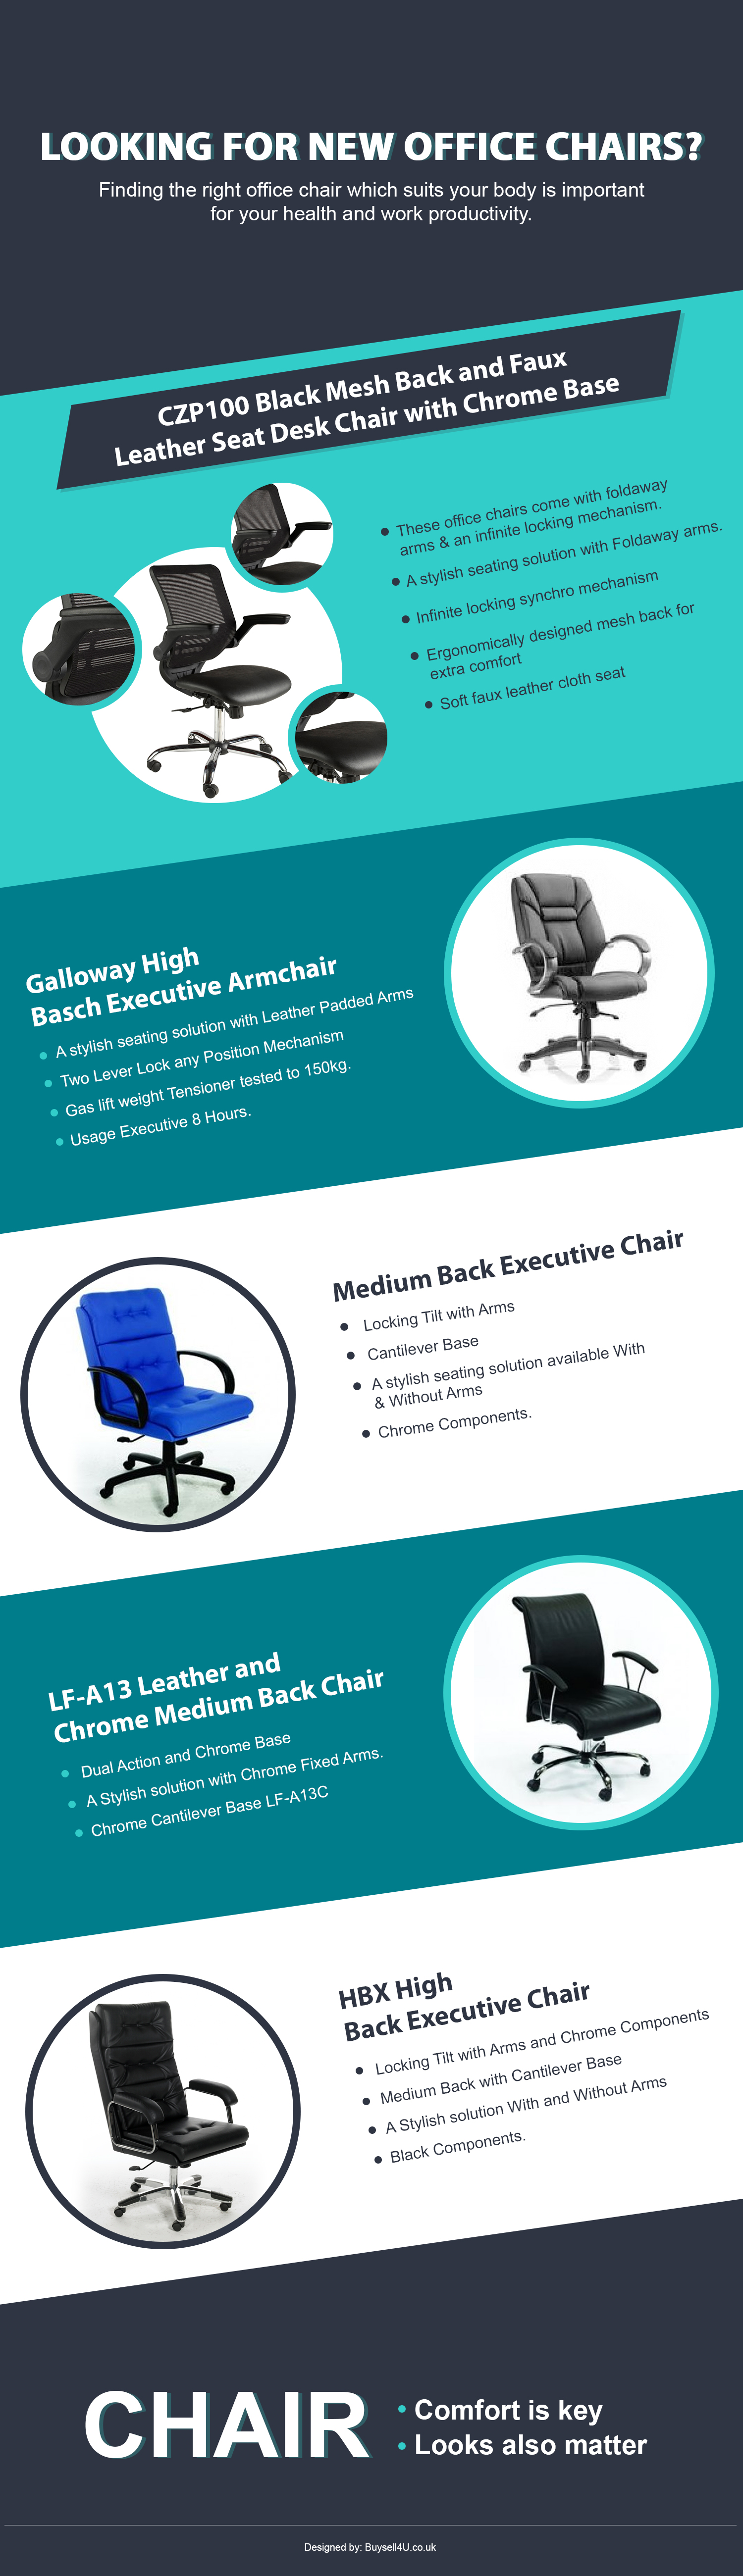 Looking For Office Chairs? Infographic